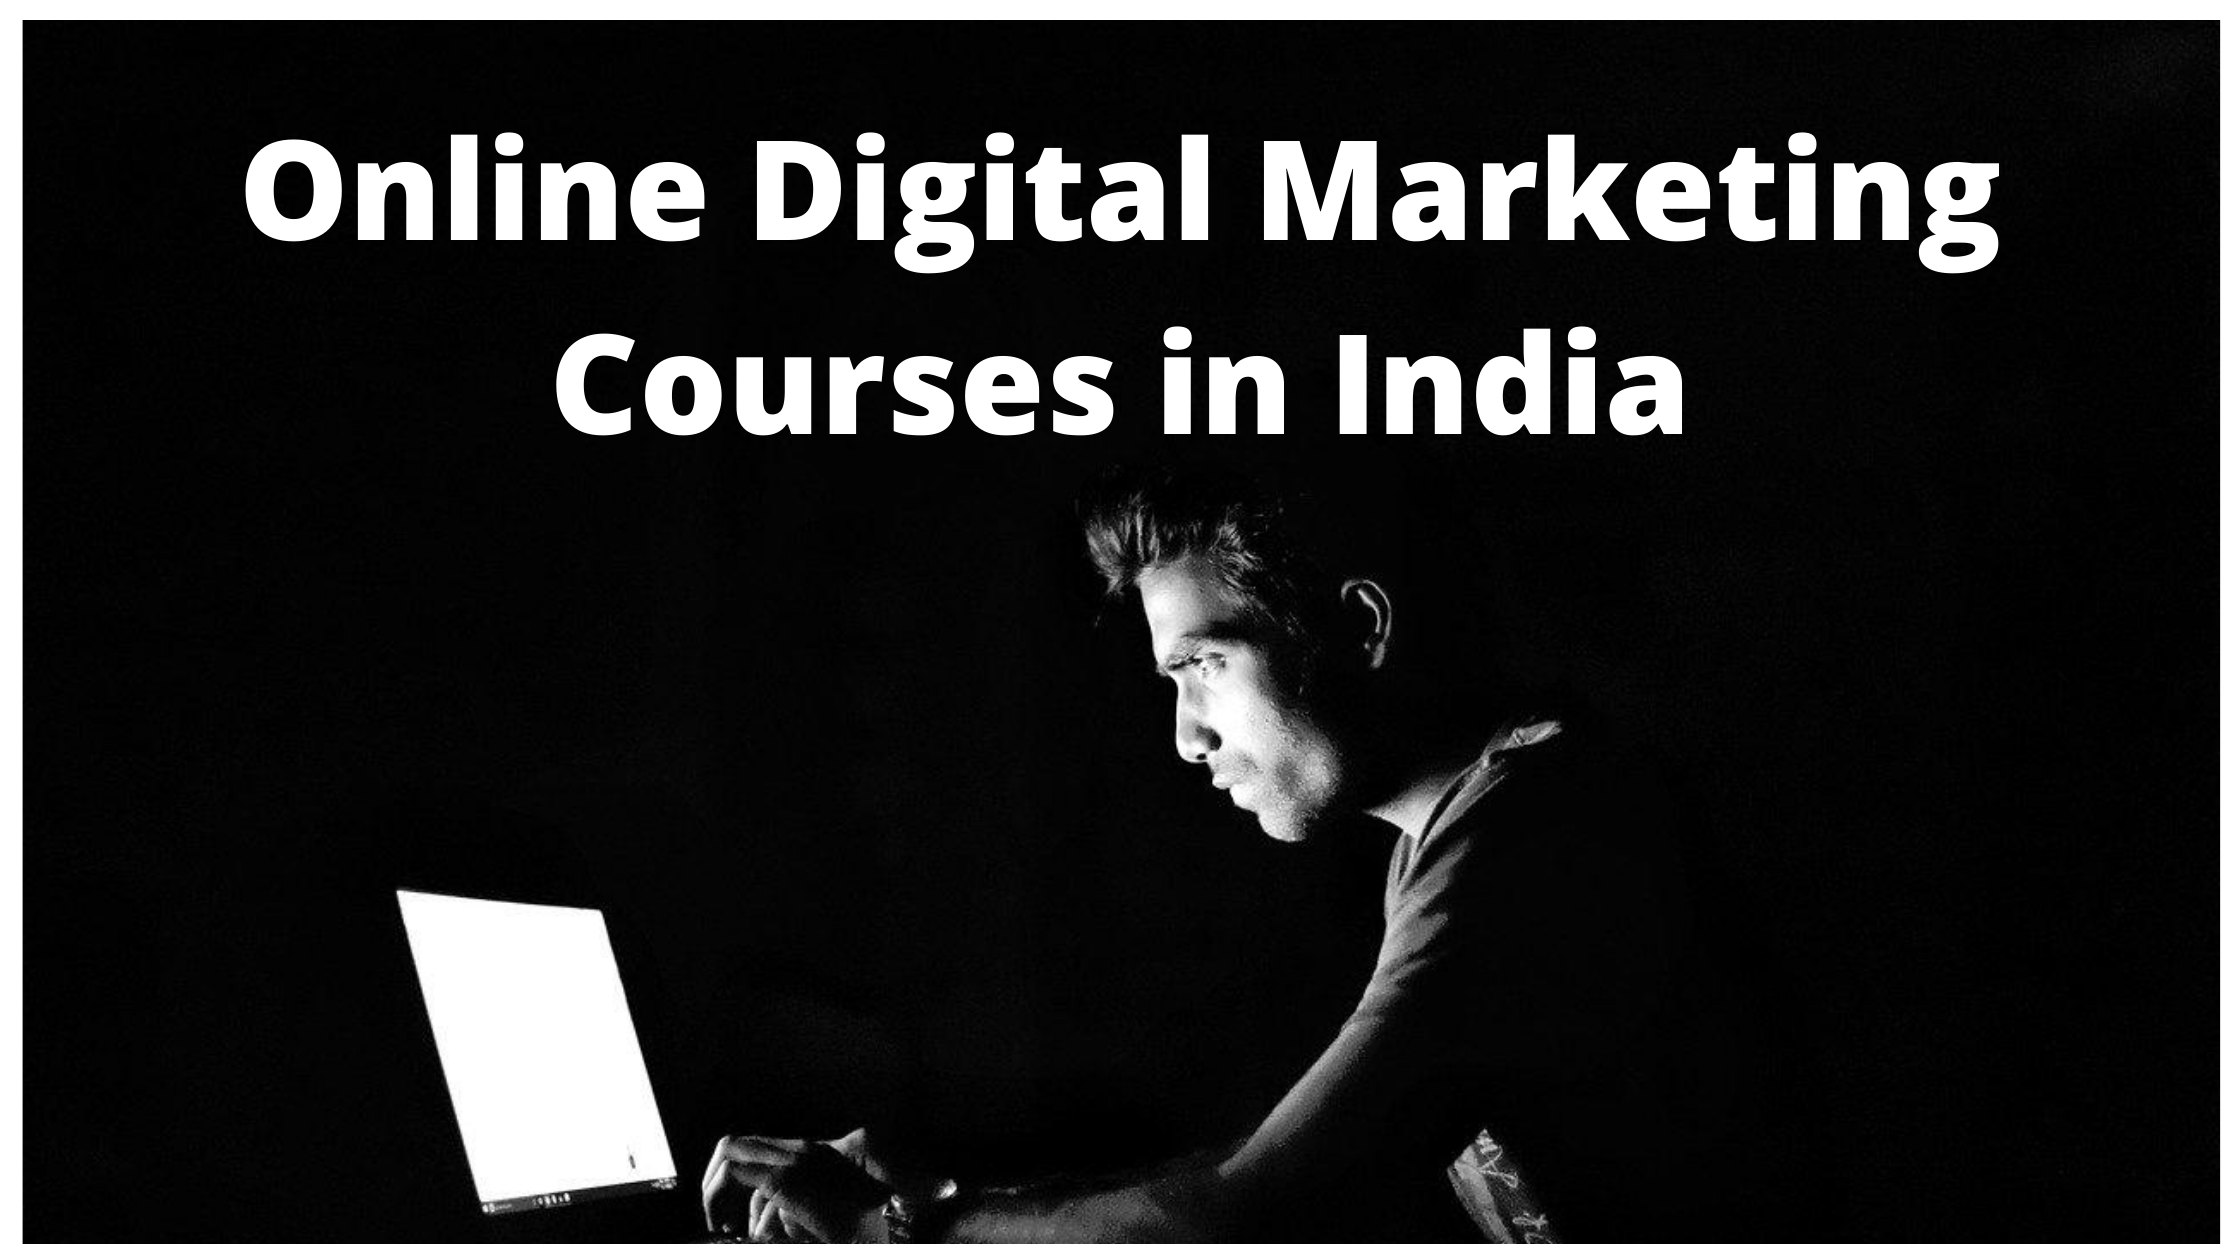 Best Online Digital Marketing Courses in India